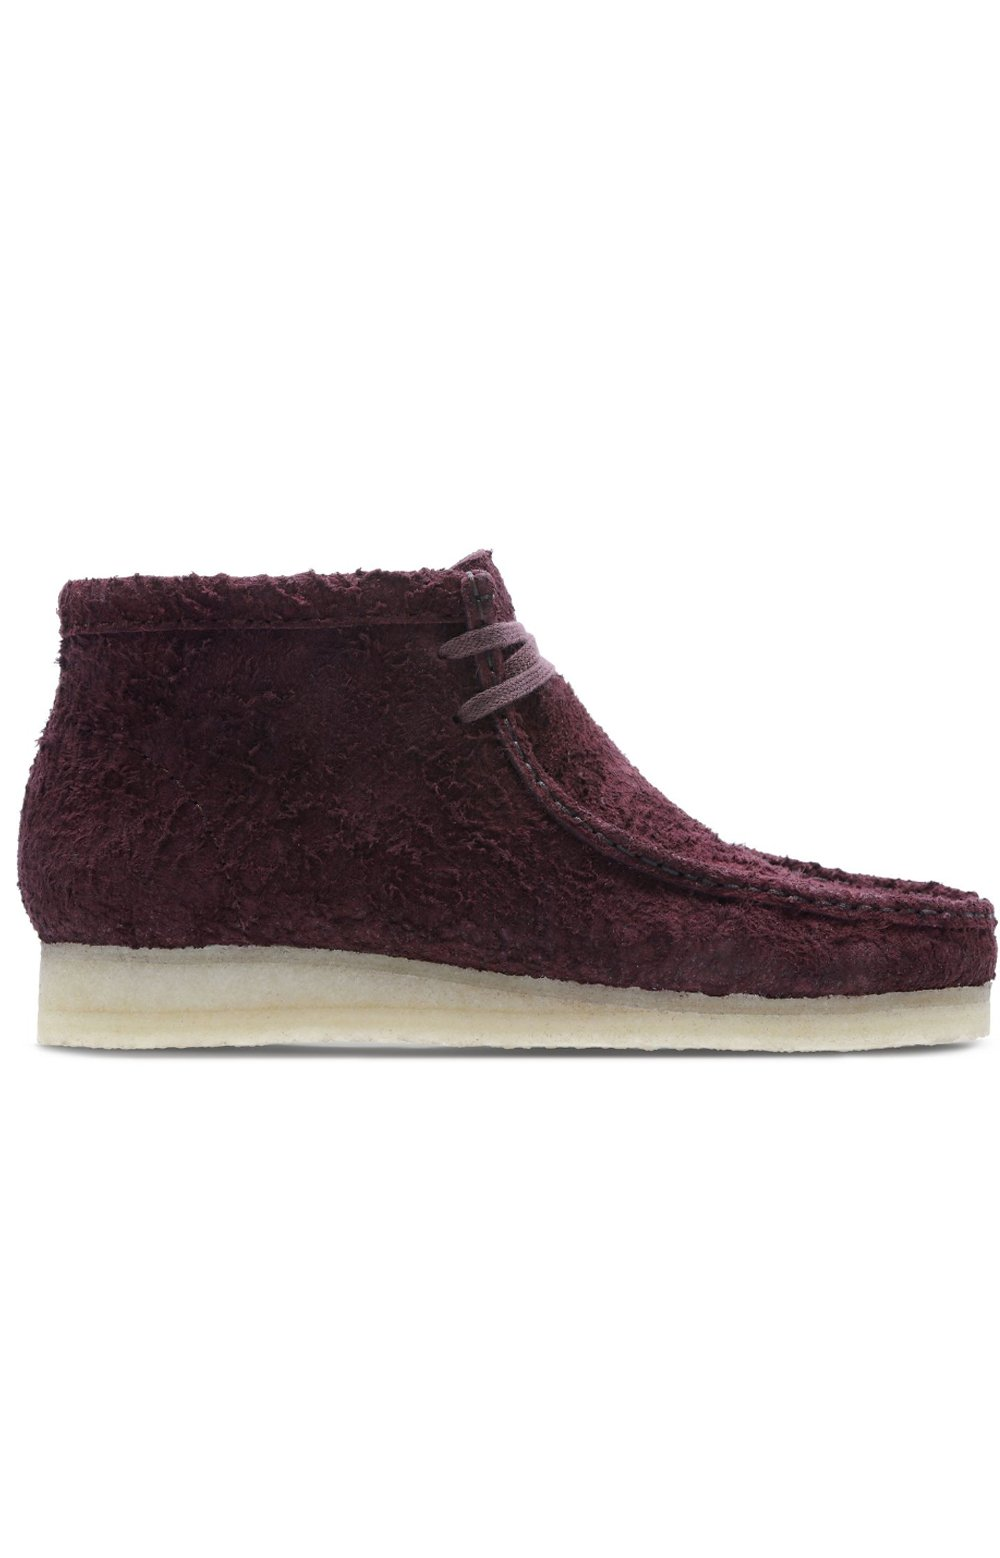 (26135321) Wallabee Steep Boot - Burgundy Interest